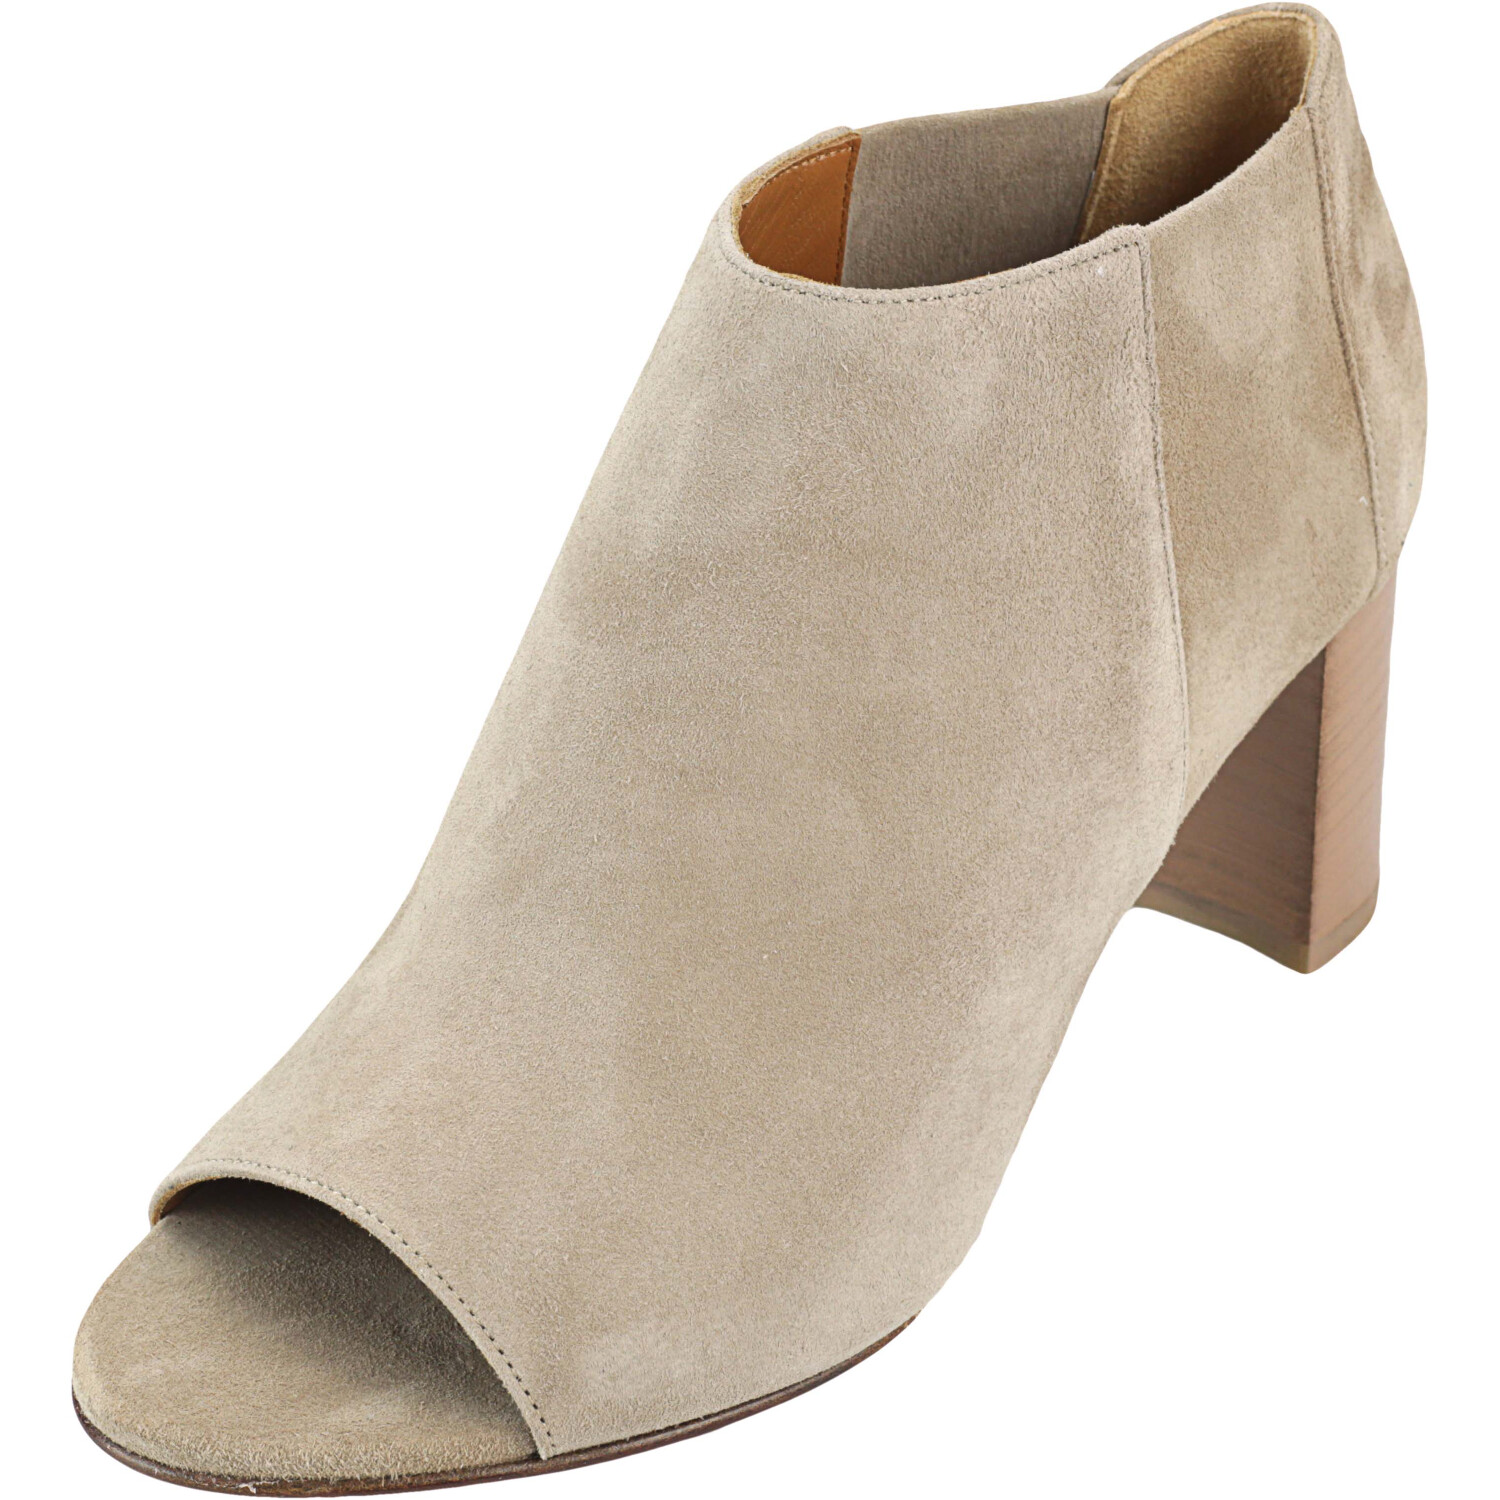 Aquatalia Women's Shaw Suede Almond Ankle-High Boot - 5.5M